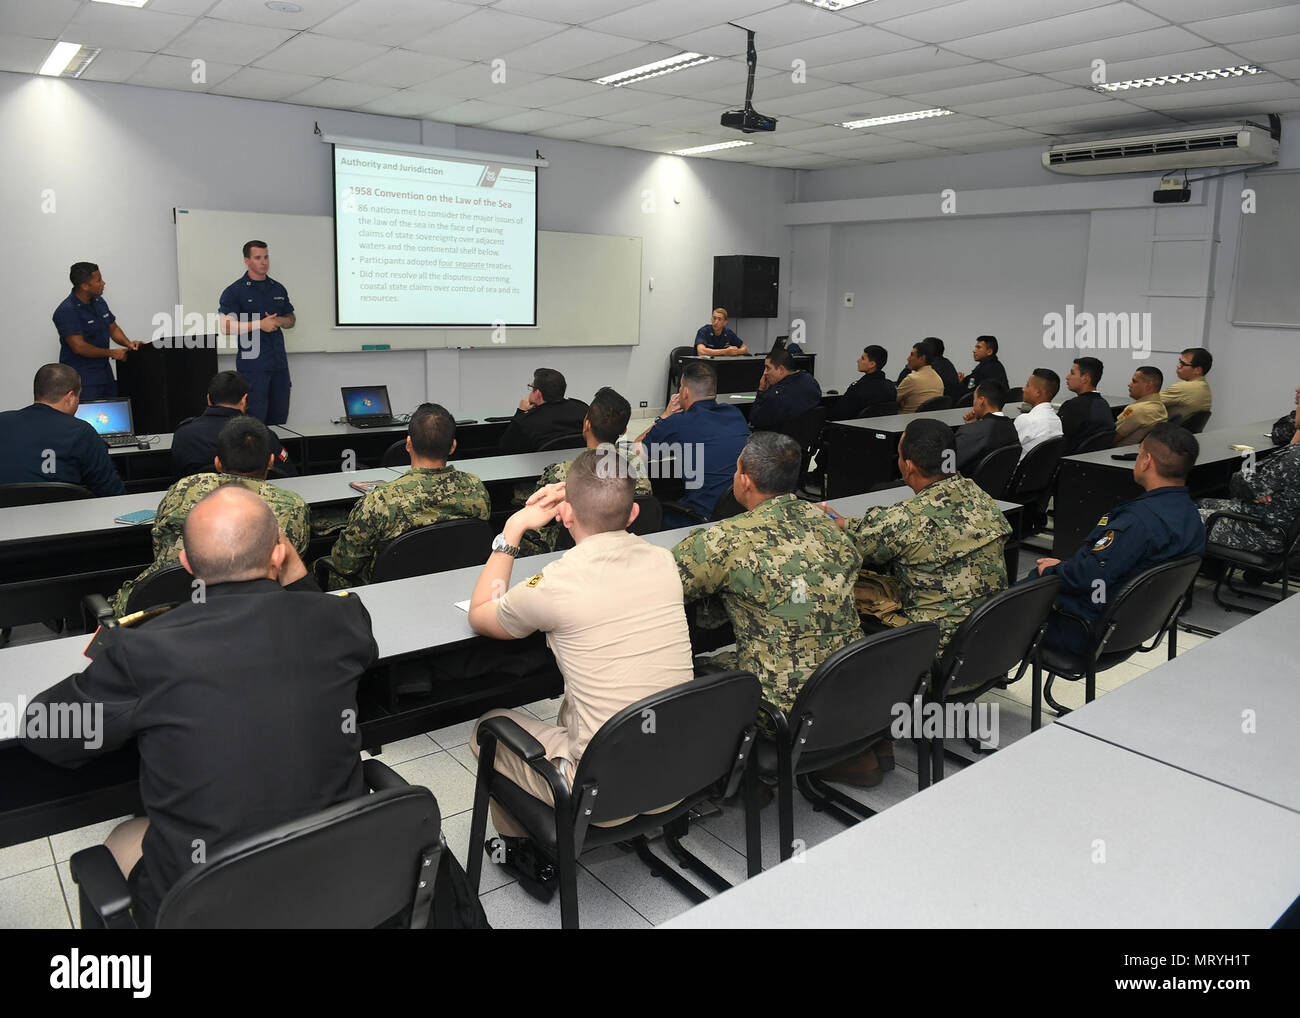 170716-N-PQ607-009  LIMA, Peru (July 16, 2917) - U.S. Coast Guard Lt. Andrew Ray conducts a maritime law enforcement symposium with UNITAS partner nation participants from Mexico, Peru, Honduras and Chile. UNITAS is an annual exercise that focuses on strengthening our existing regional partnerships and encourages establishing new relationships through the exchange of maritime mission-focused knowledge and expertise throughout the exercise. (U.S. Navy photo by Mass Communication Specialist 2nd Class Michael Hendricks/Released) - Stock Image